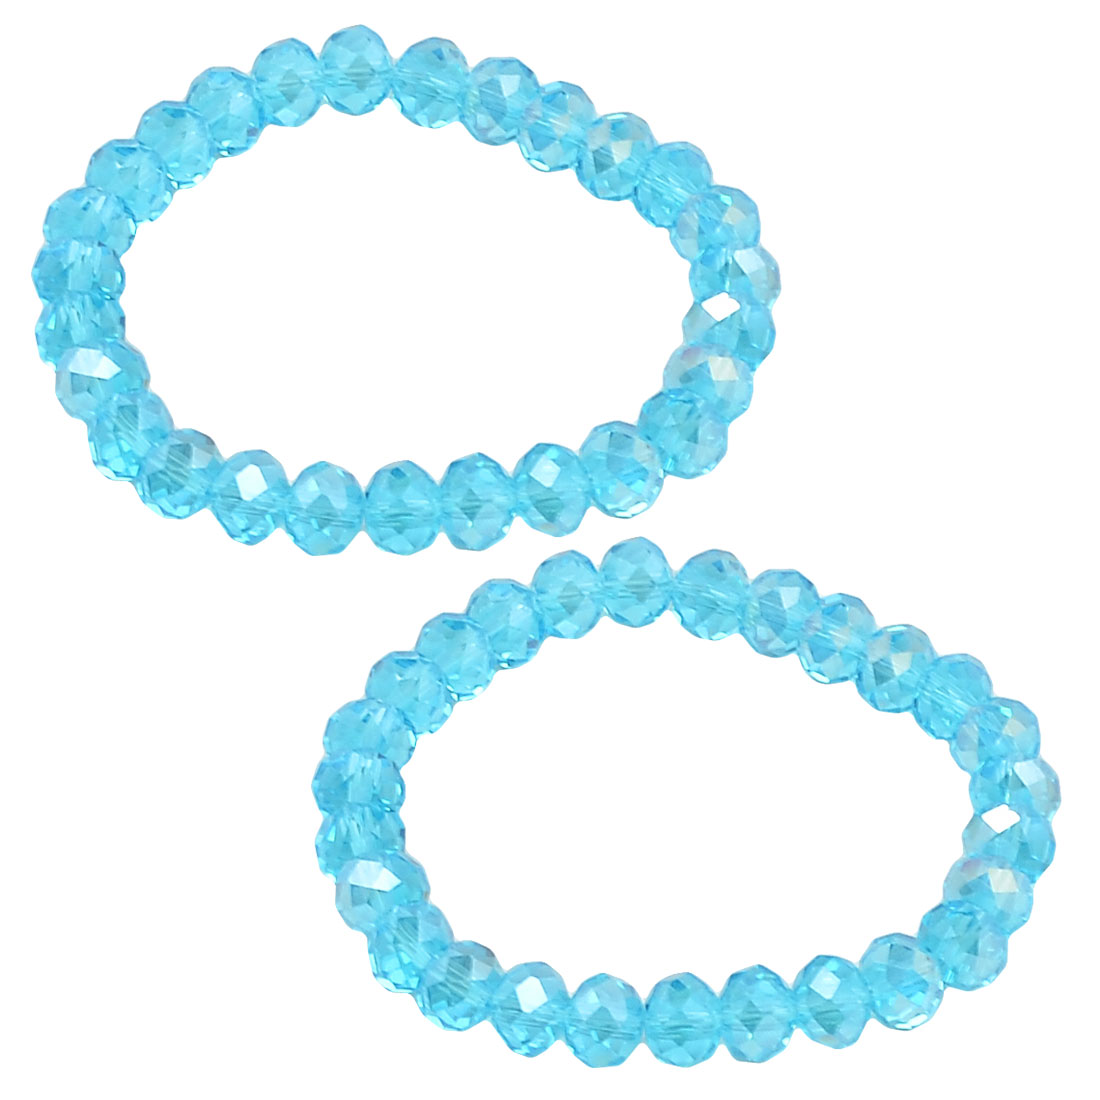 2 x Ladies 8mm Dia Plastic Crystal Beads Stretch Bracelets Bangle Clear Blue